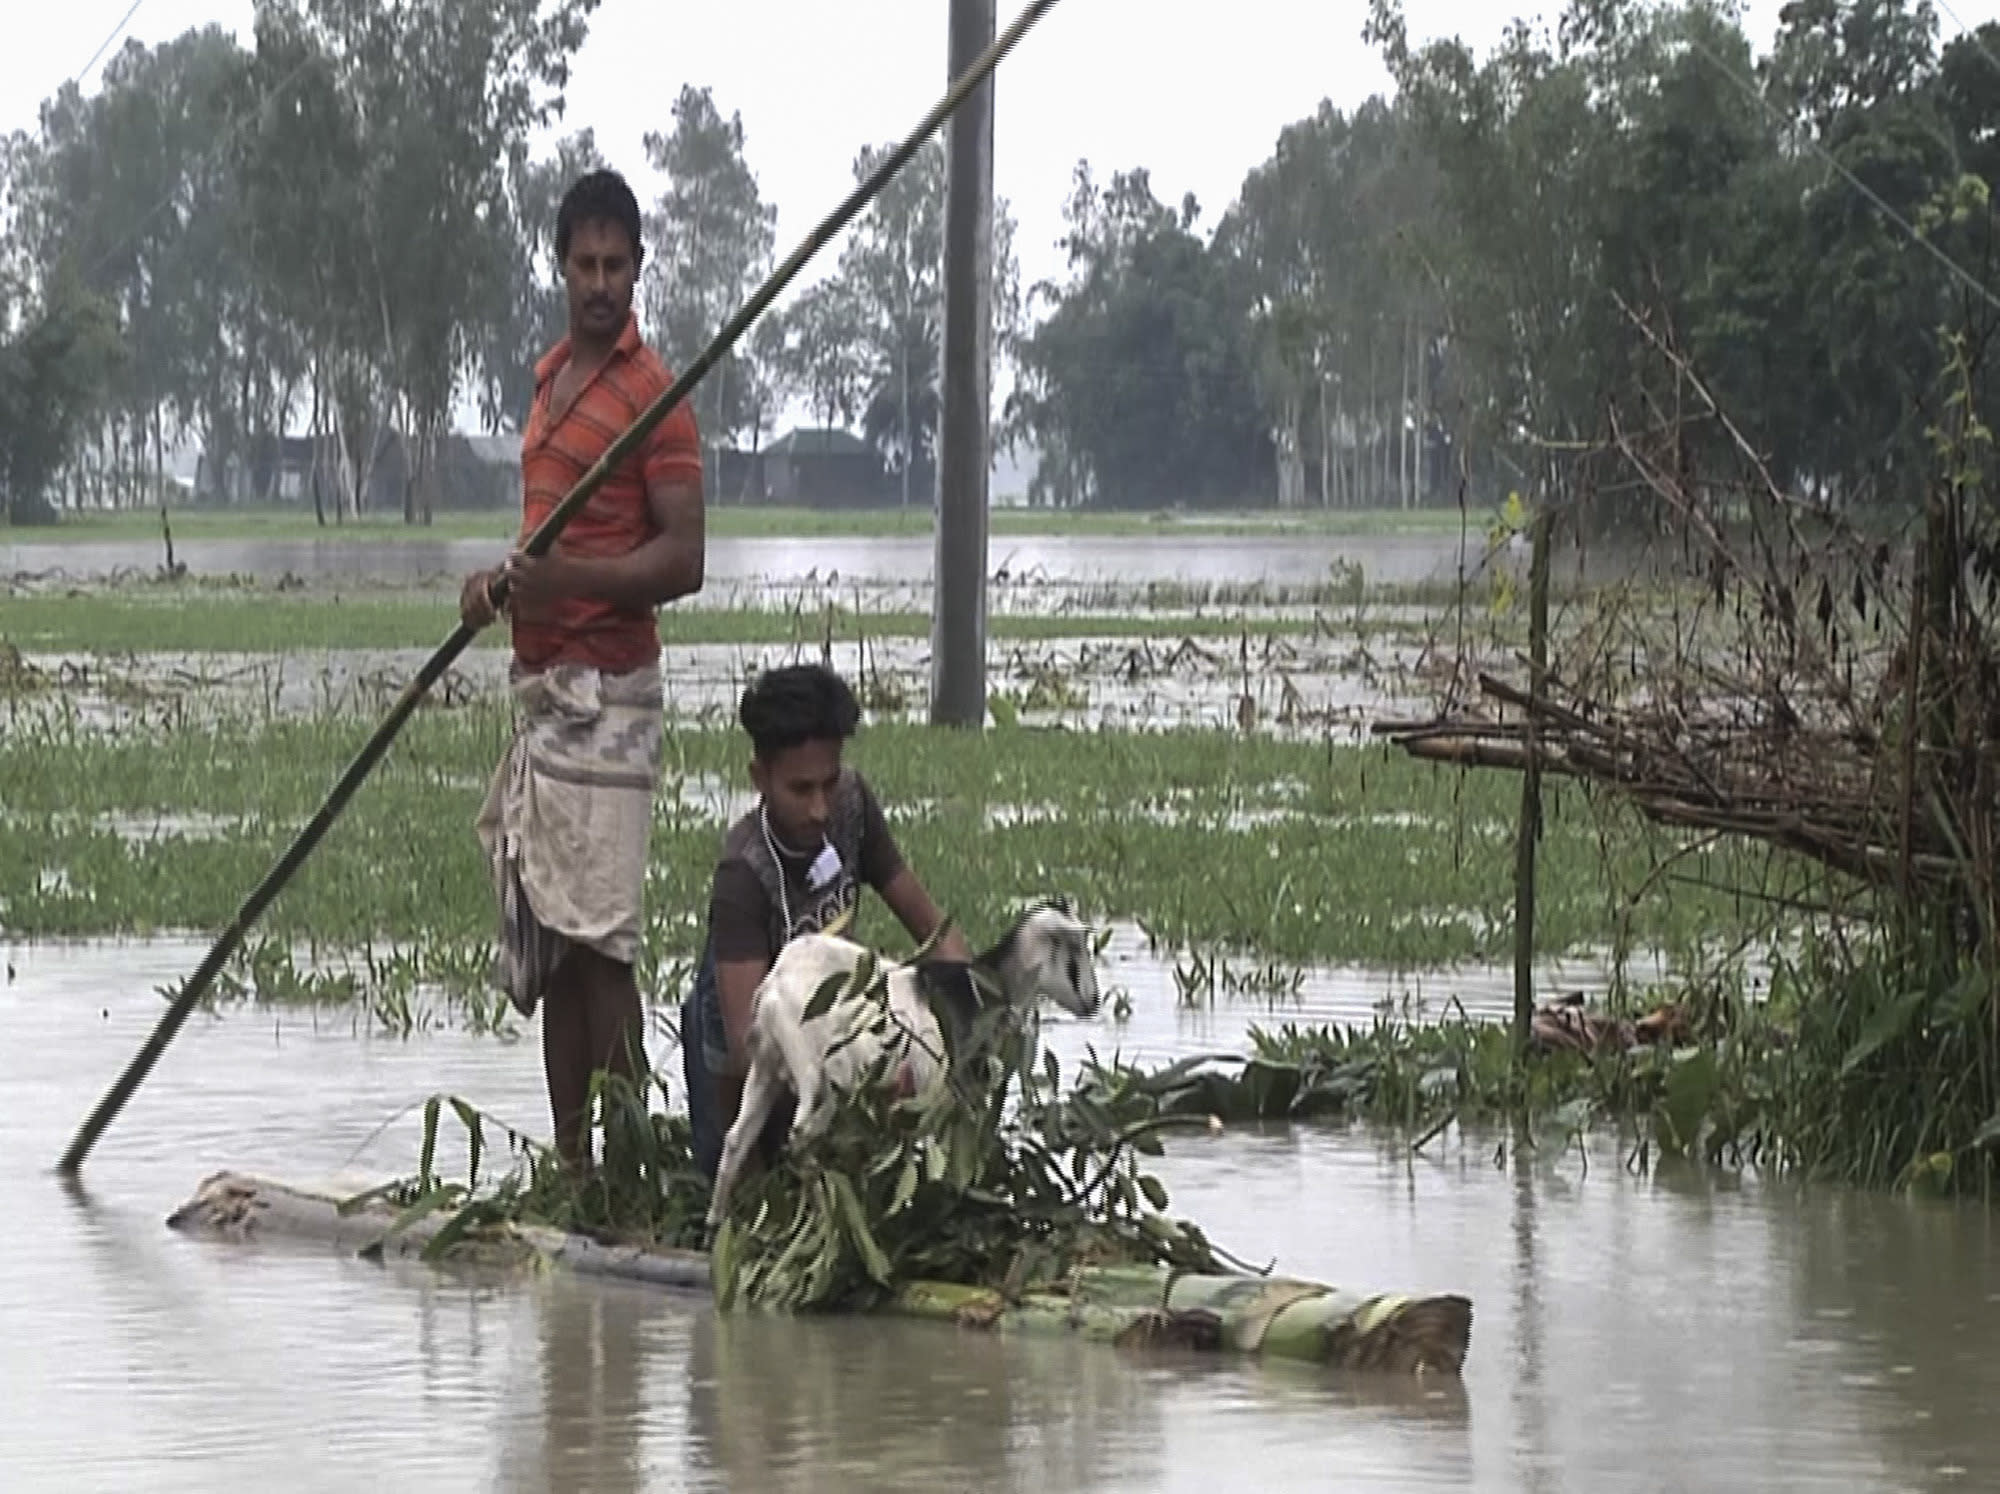 In this video grab taken from the Associated Press Television footage Bangladeshi men with a goat row a banana raft through flood waters in Lalmonirhat, Bangladesh, Monday, July 13, 2020. Heavy flooding is worsening in parts of Bangladesh, with over 1 million villagers marooned or leaving their homes for higher ground along with their cattle and other belongings, officials and volunteers said Tuesday. (AP Photo/Bayezid Ahmed)